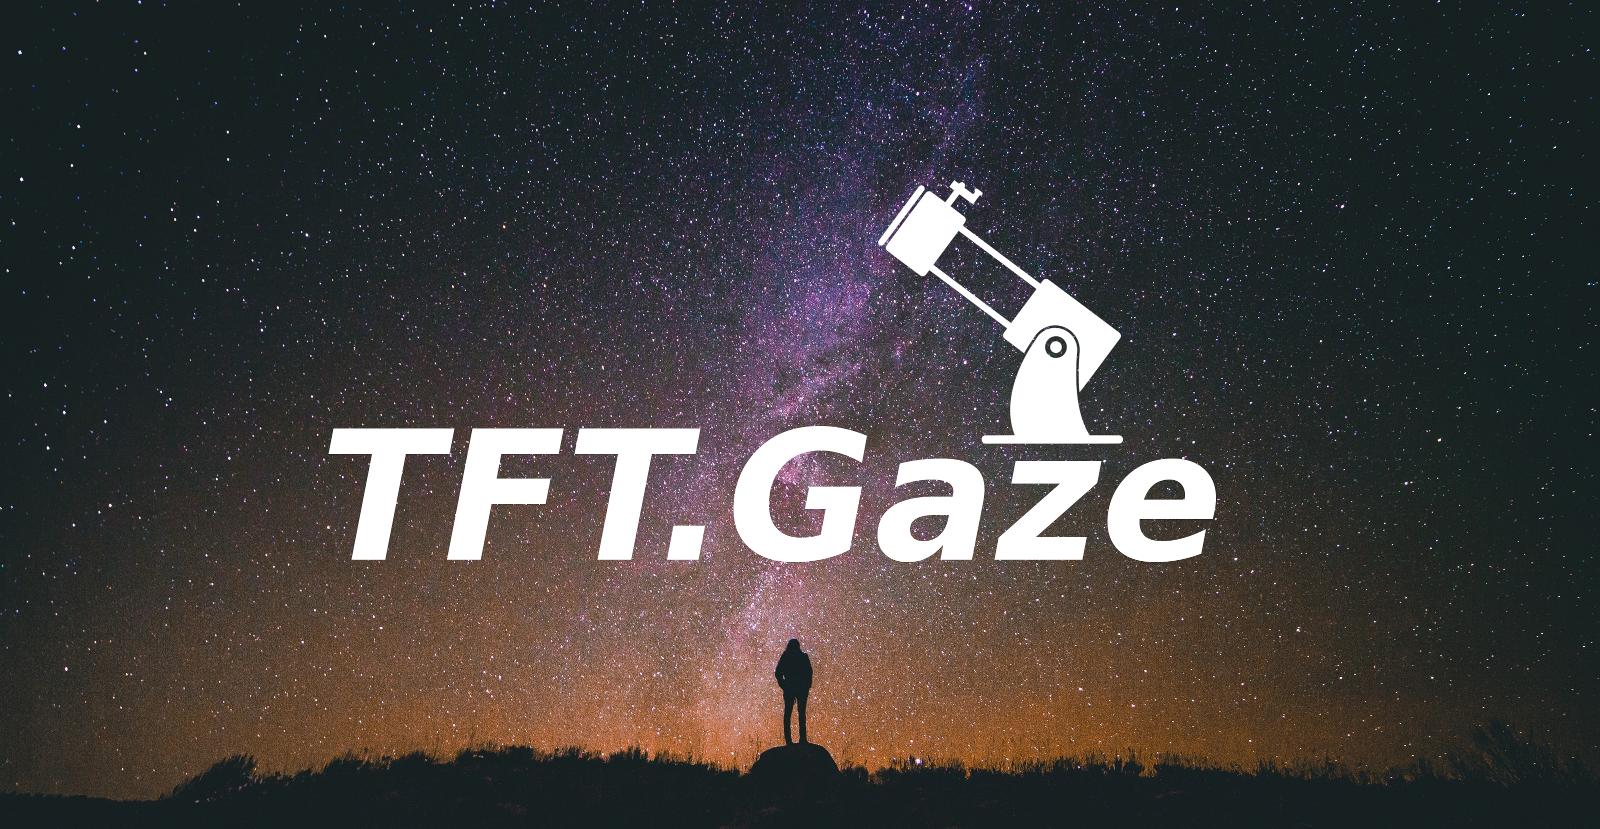 Gaze - Remotely accessible amateur astrophotography equipment